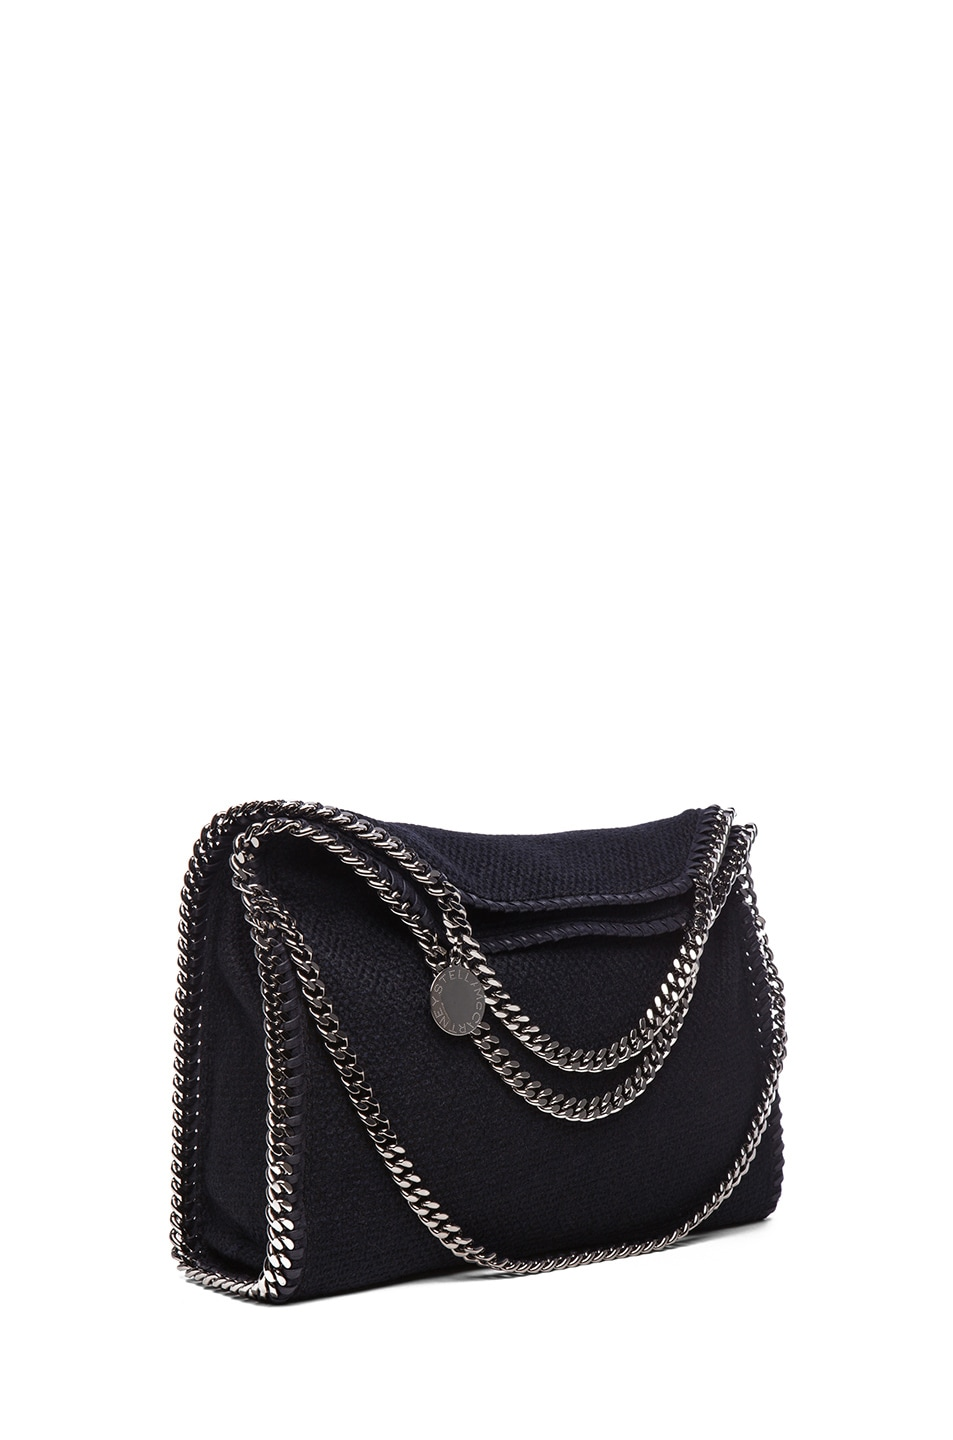 Stella McCartney Falabella 3-Chain Leopard Tote Bag